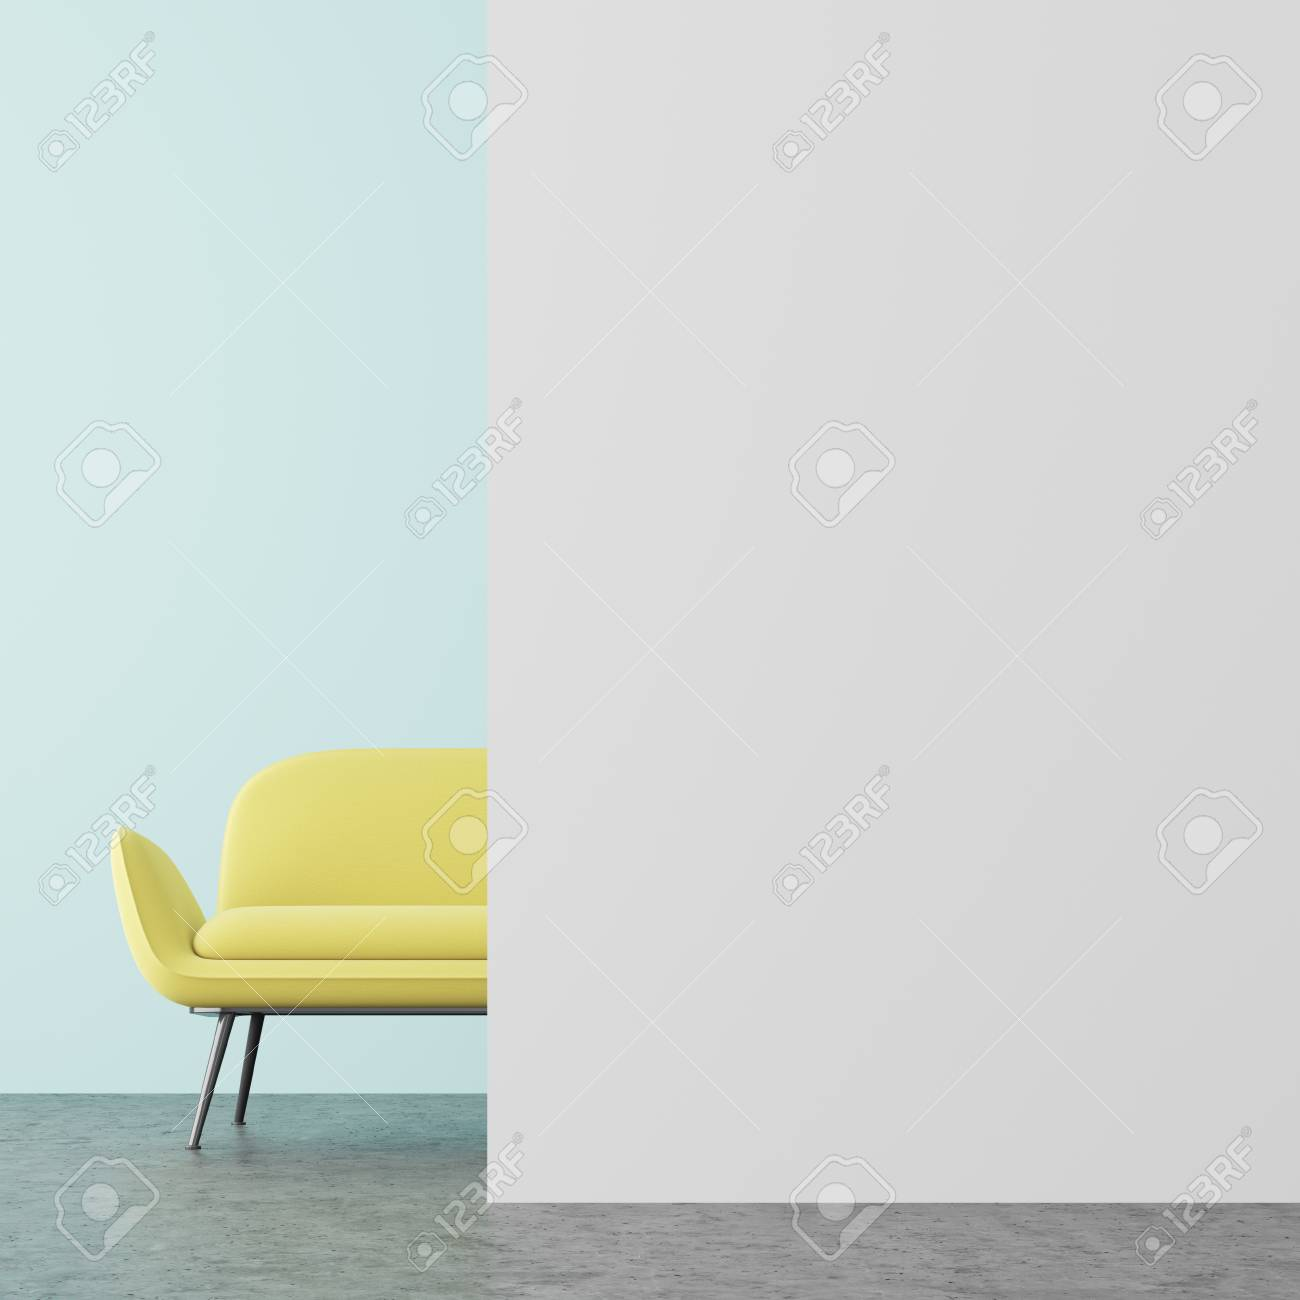 White And Pale Blue Living Room Interior With A Concrete Floor ...